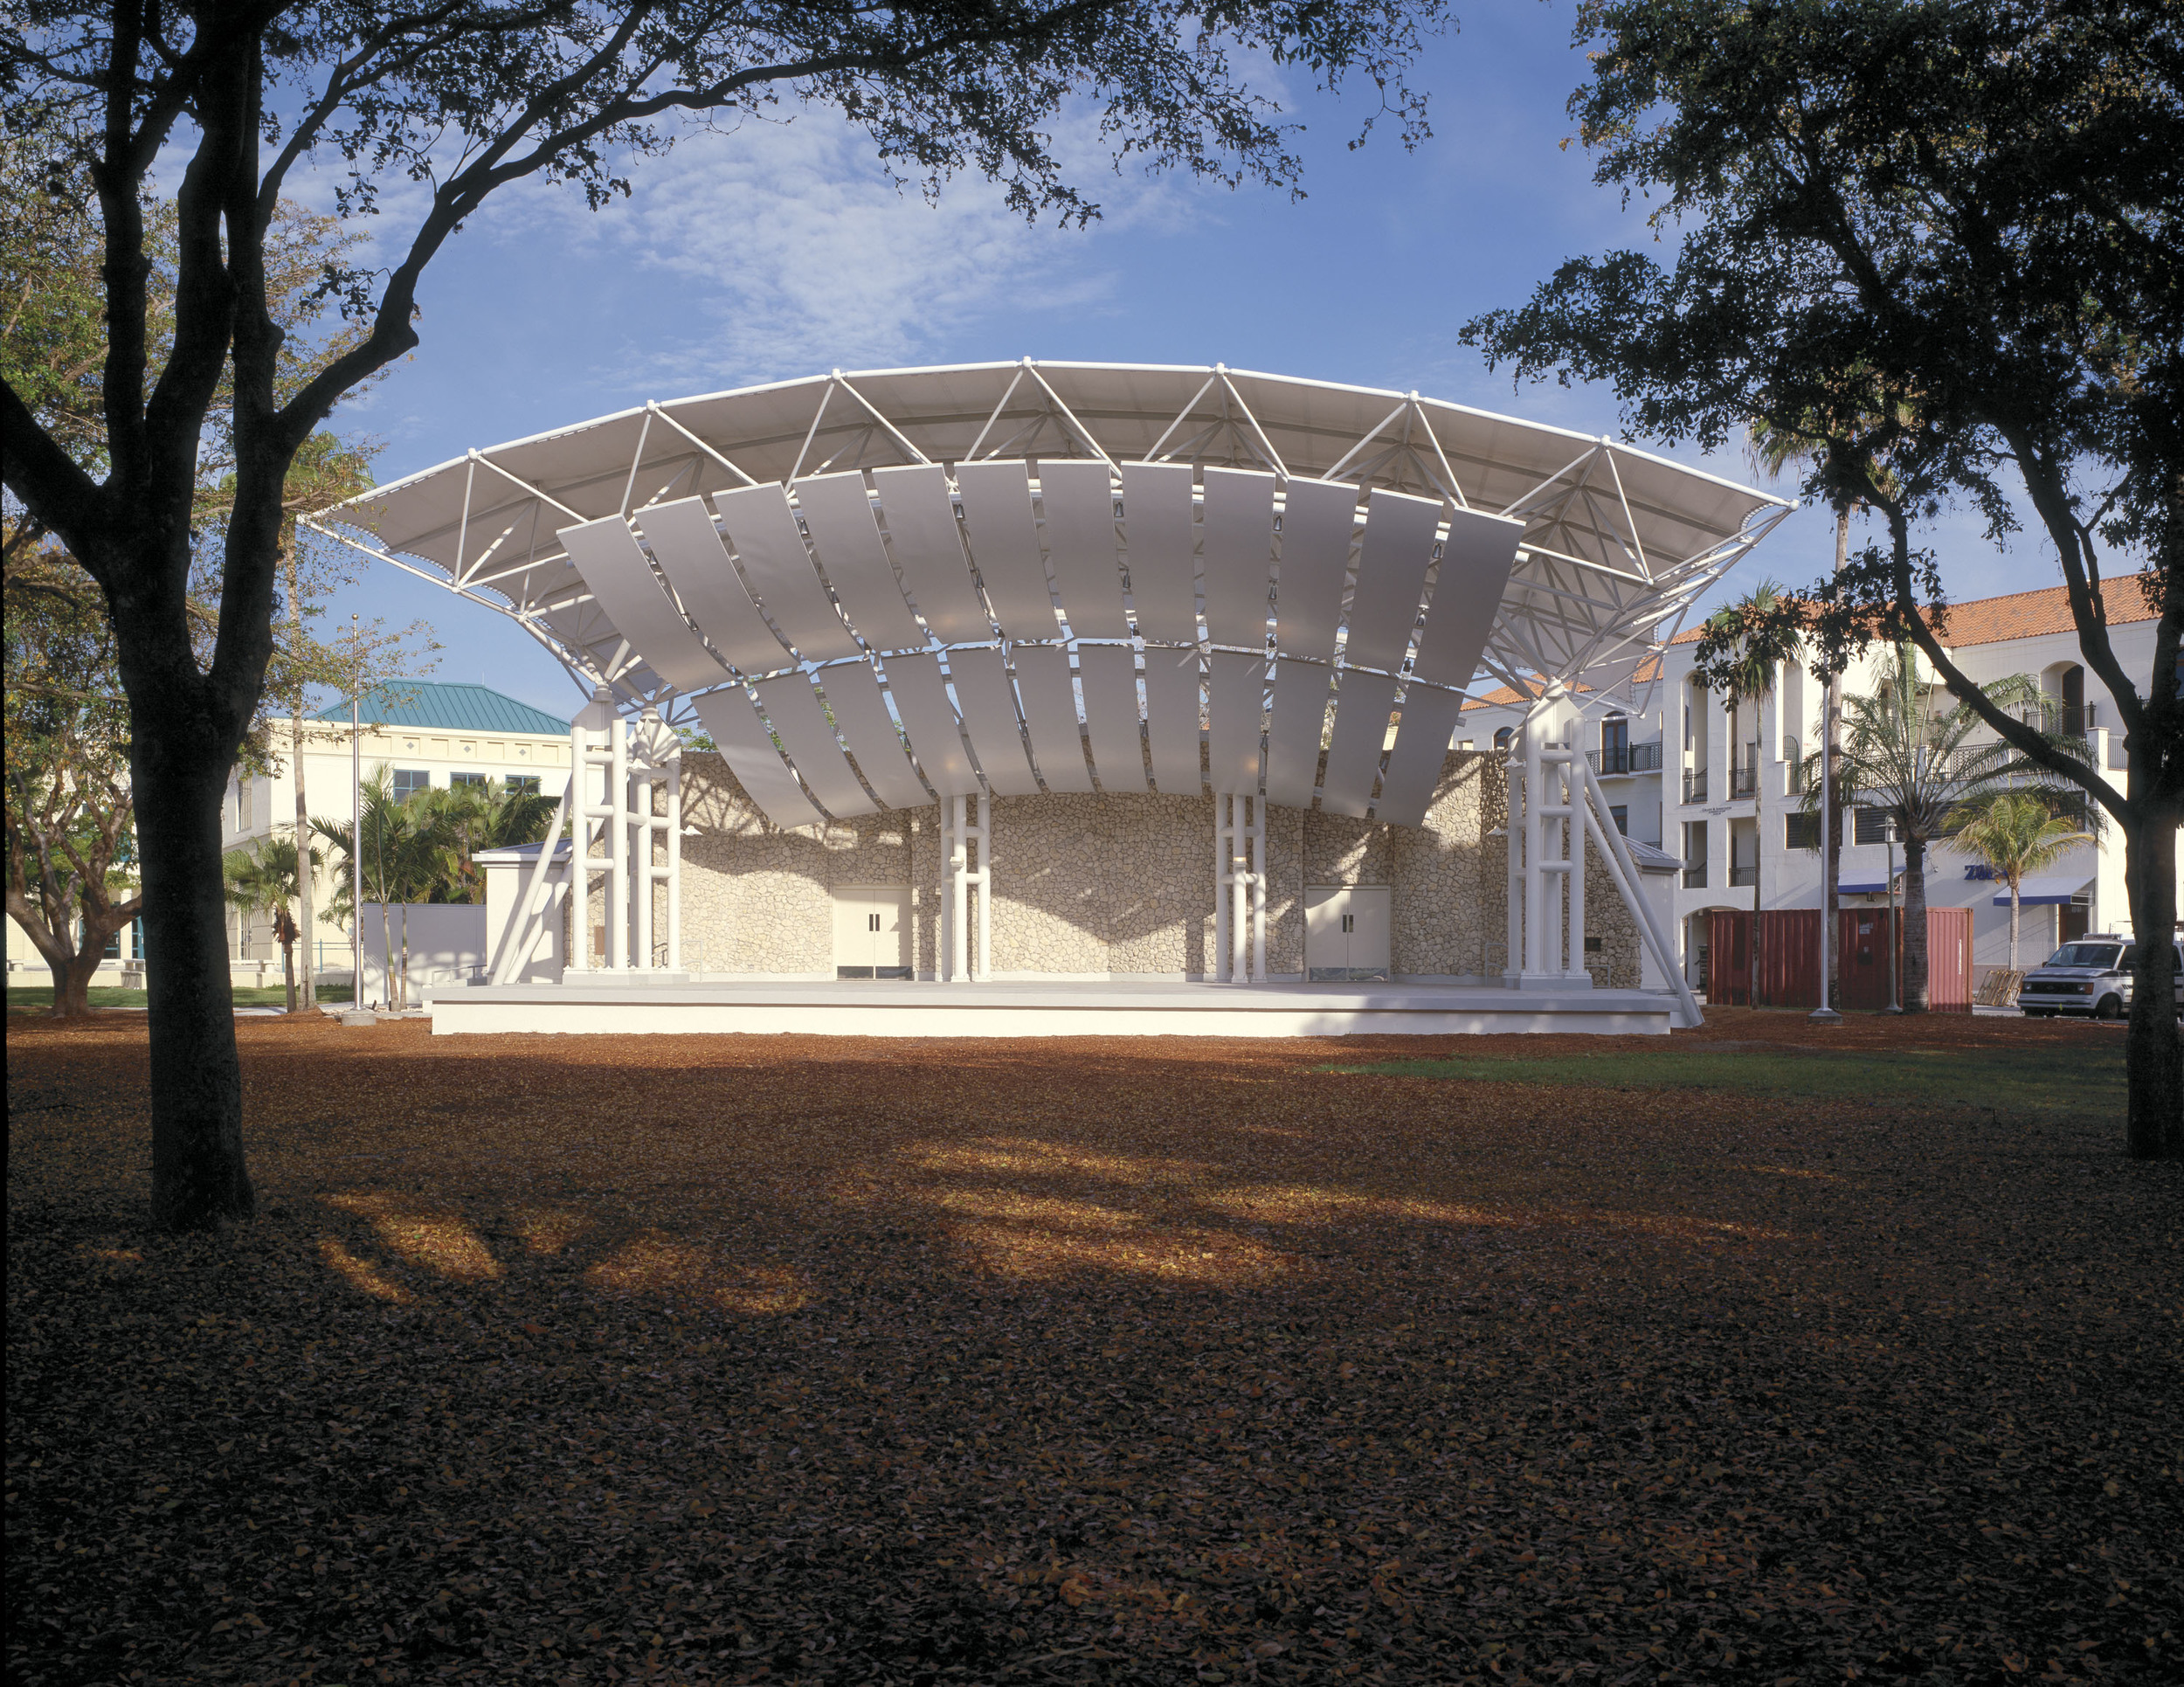 Cambier Park Bandshell